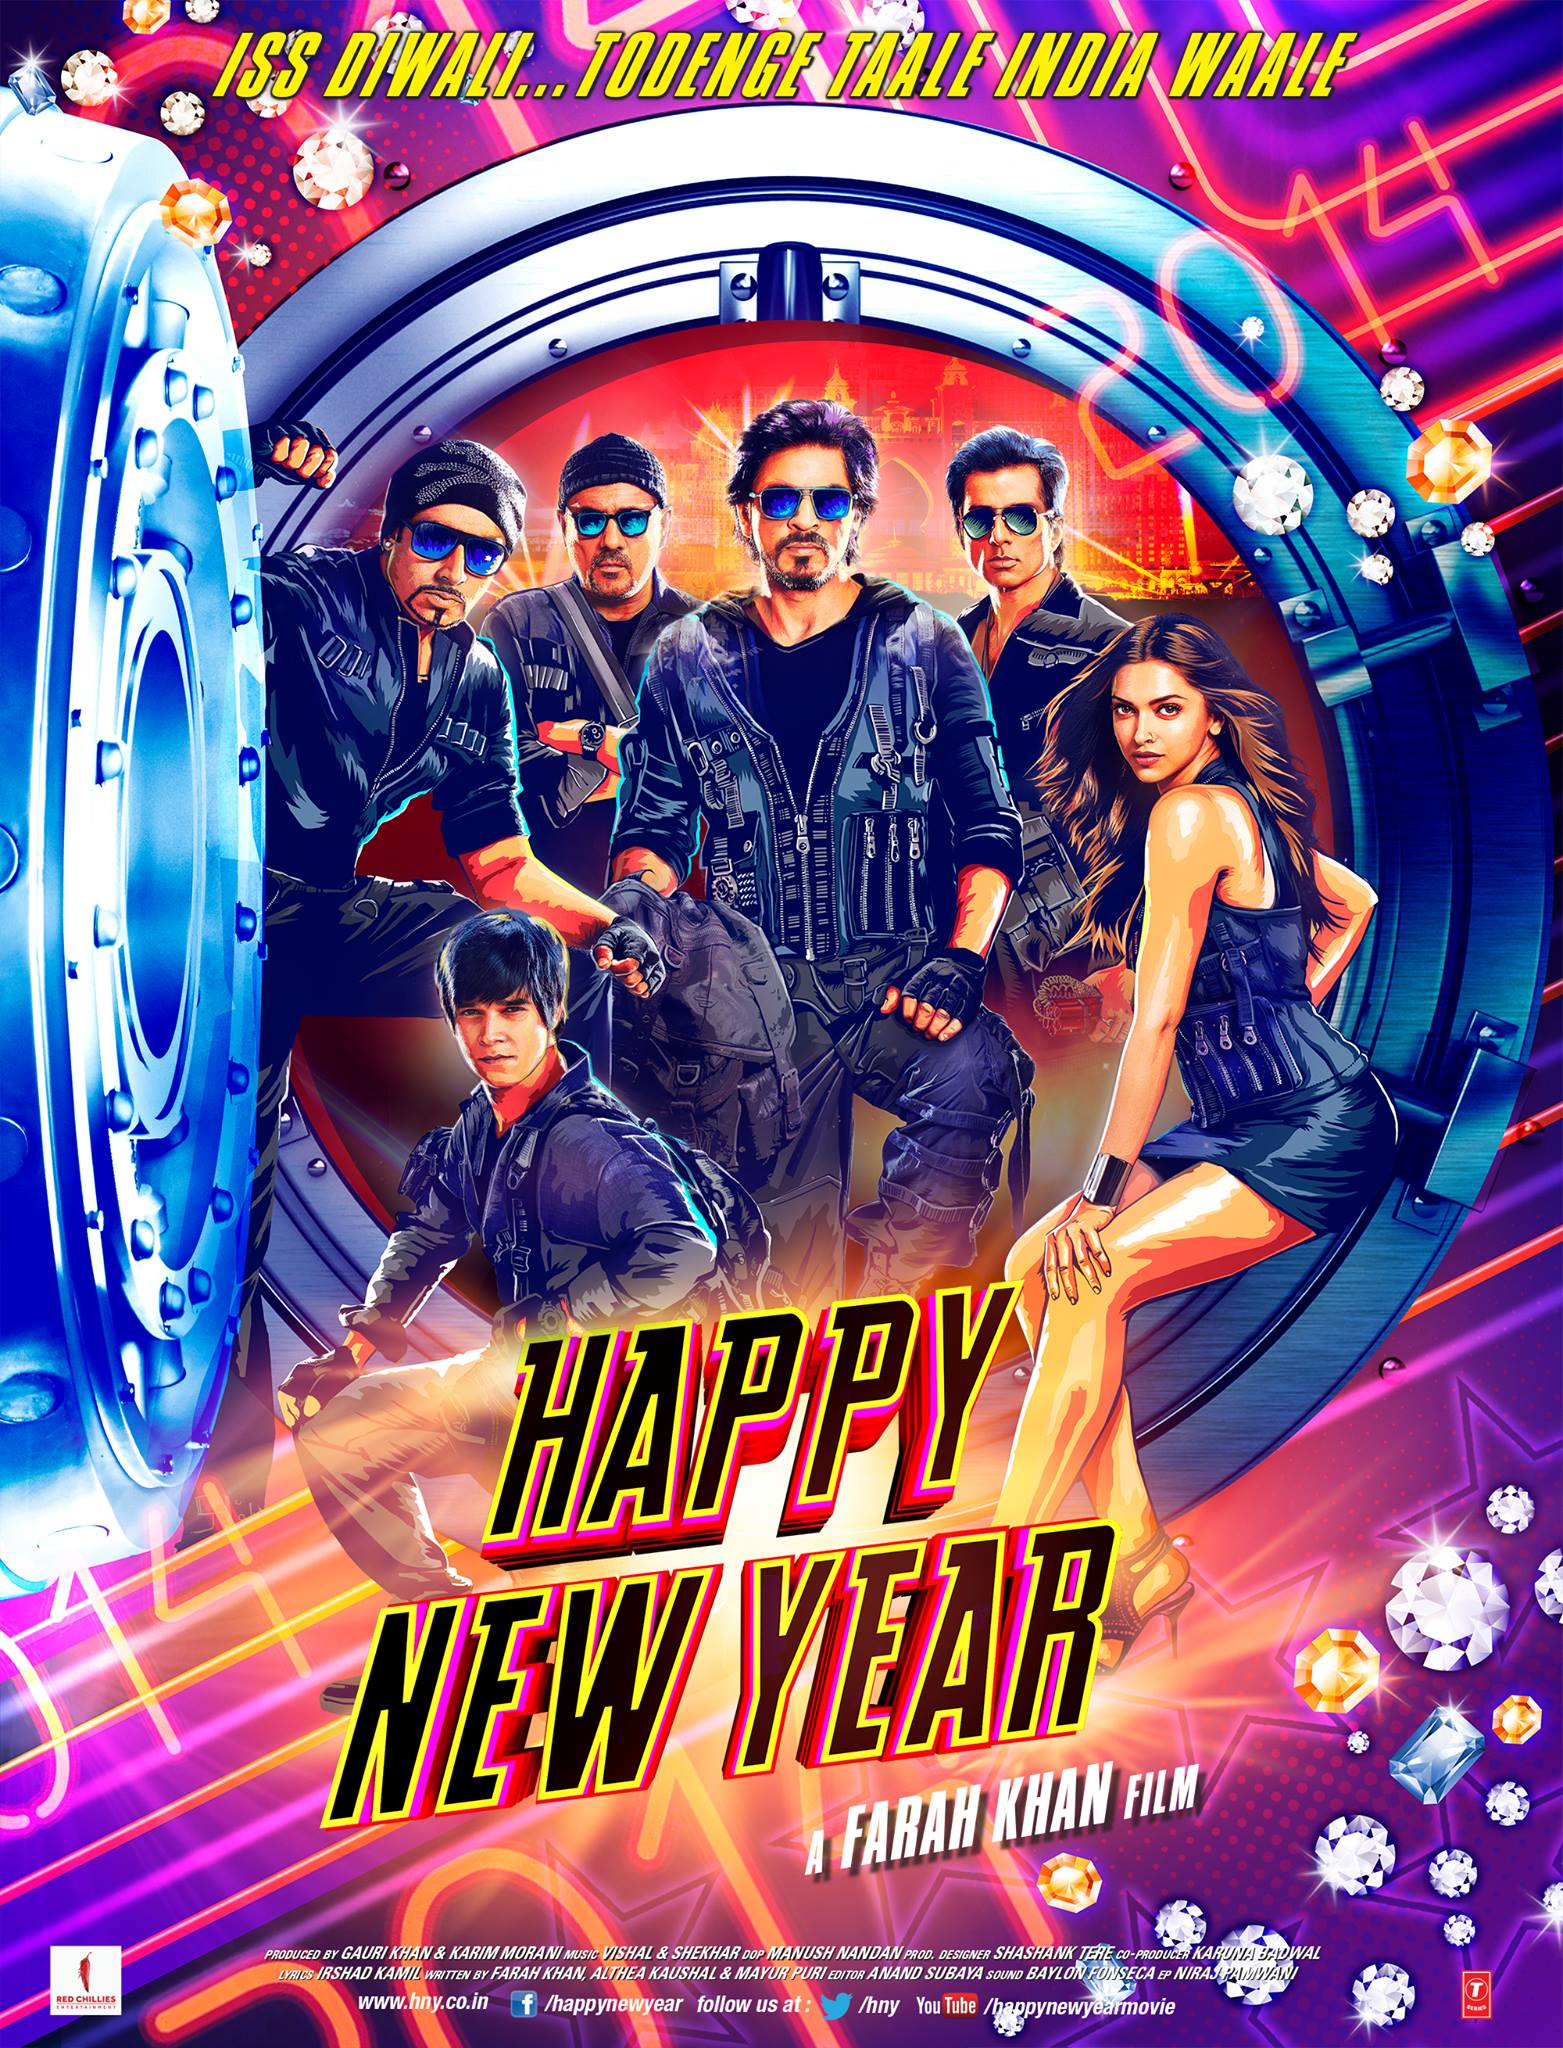 Best-Upcoming-Bollywood-Movies-2014-Happy-New-Year2